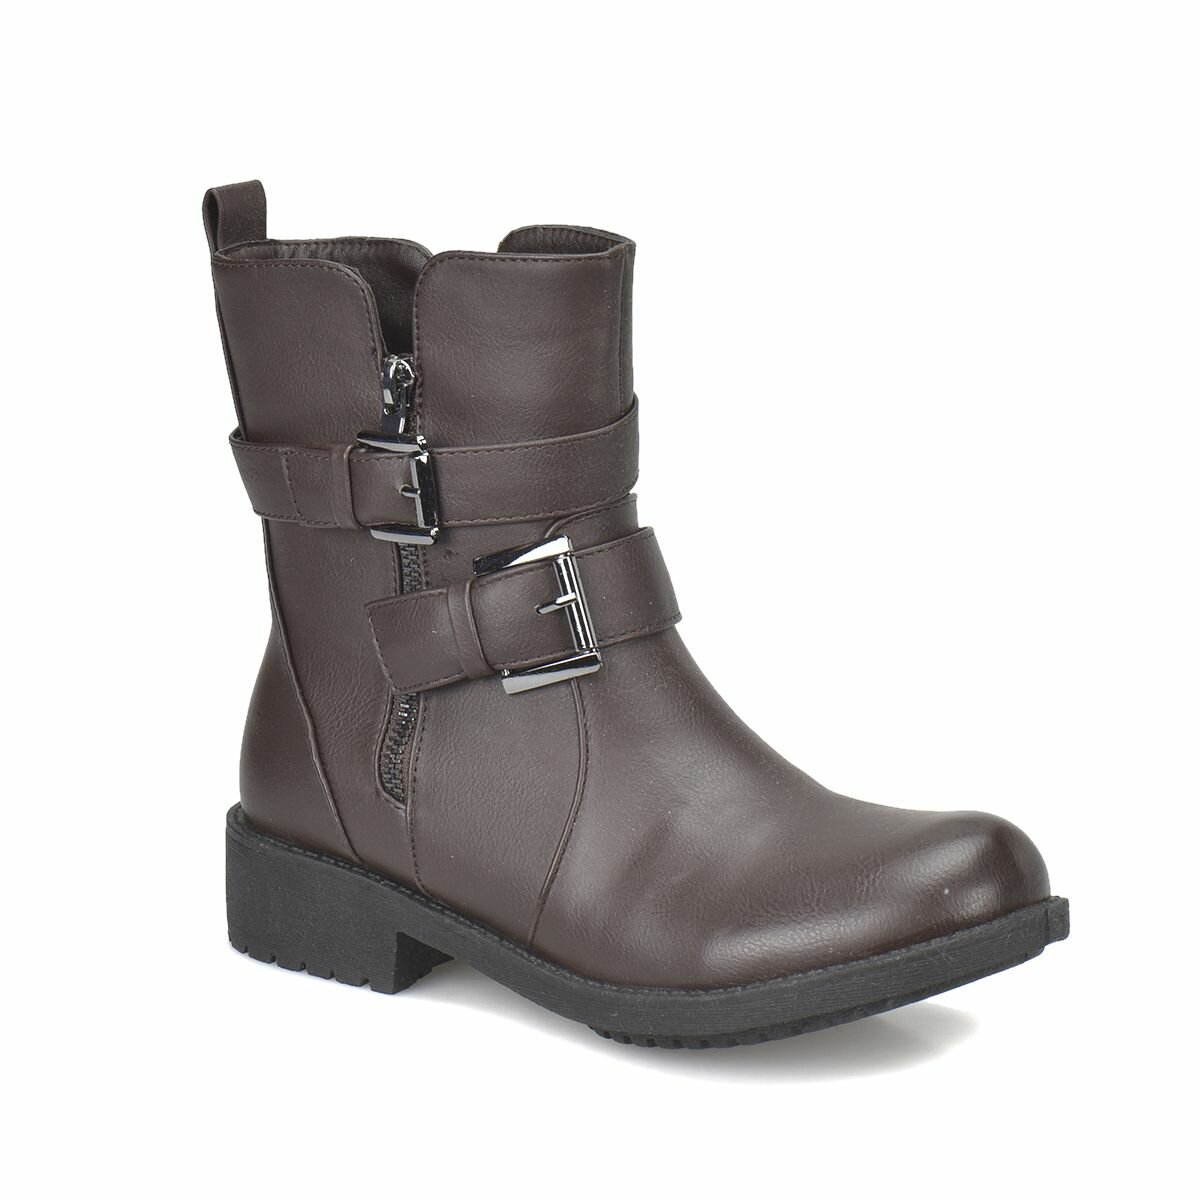 FLO 72.354201.Z Brown Women 'S Boots Polaris